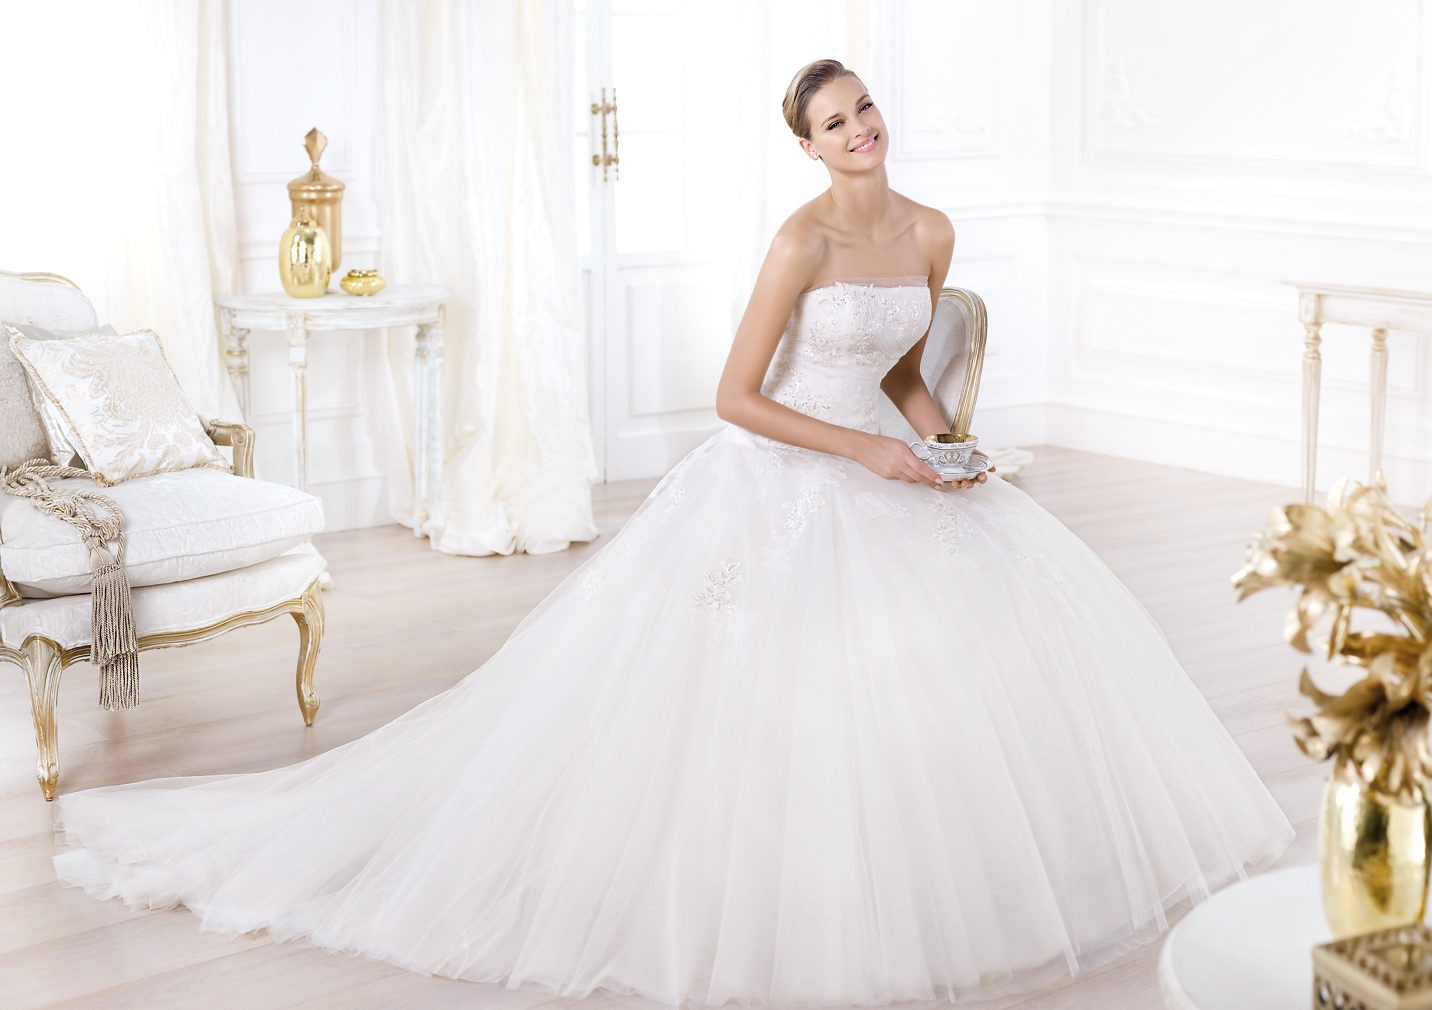 strapless tulle ball gown wedding dress with chapel train strapless tulle wedding dress strapless tulle ball gown wedding dress with chapel train